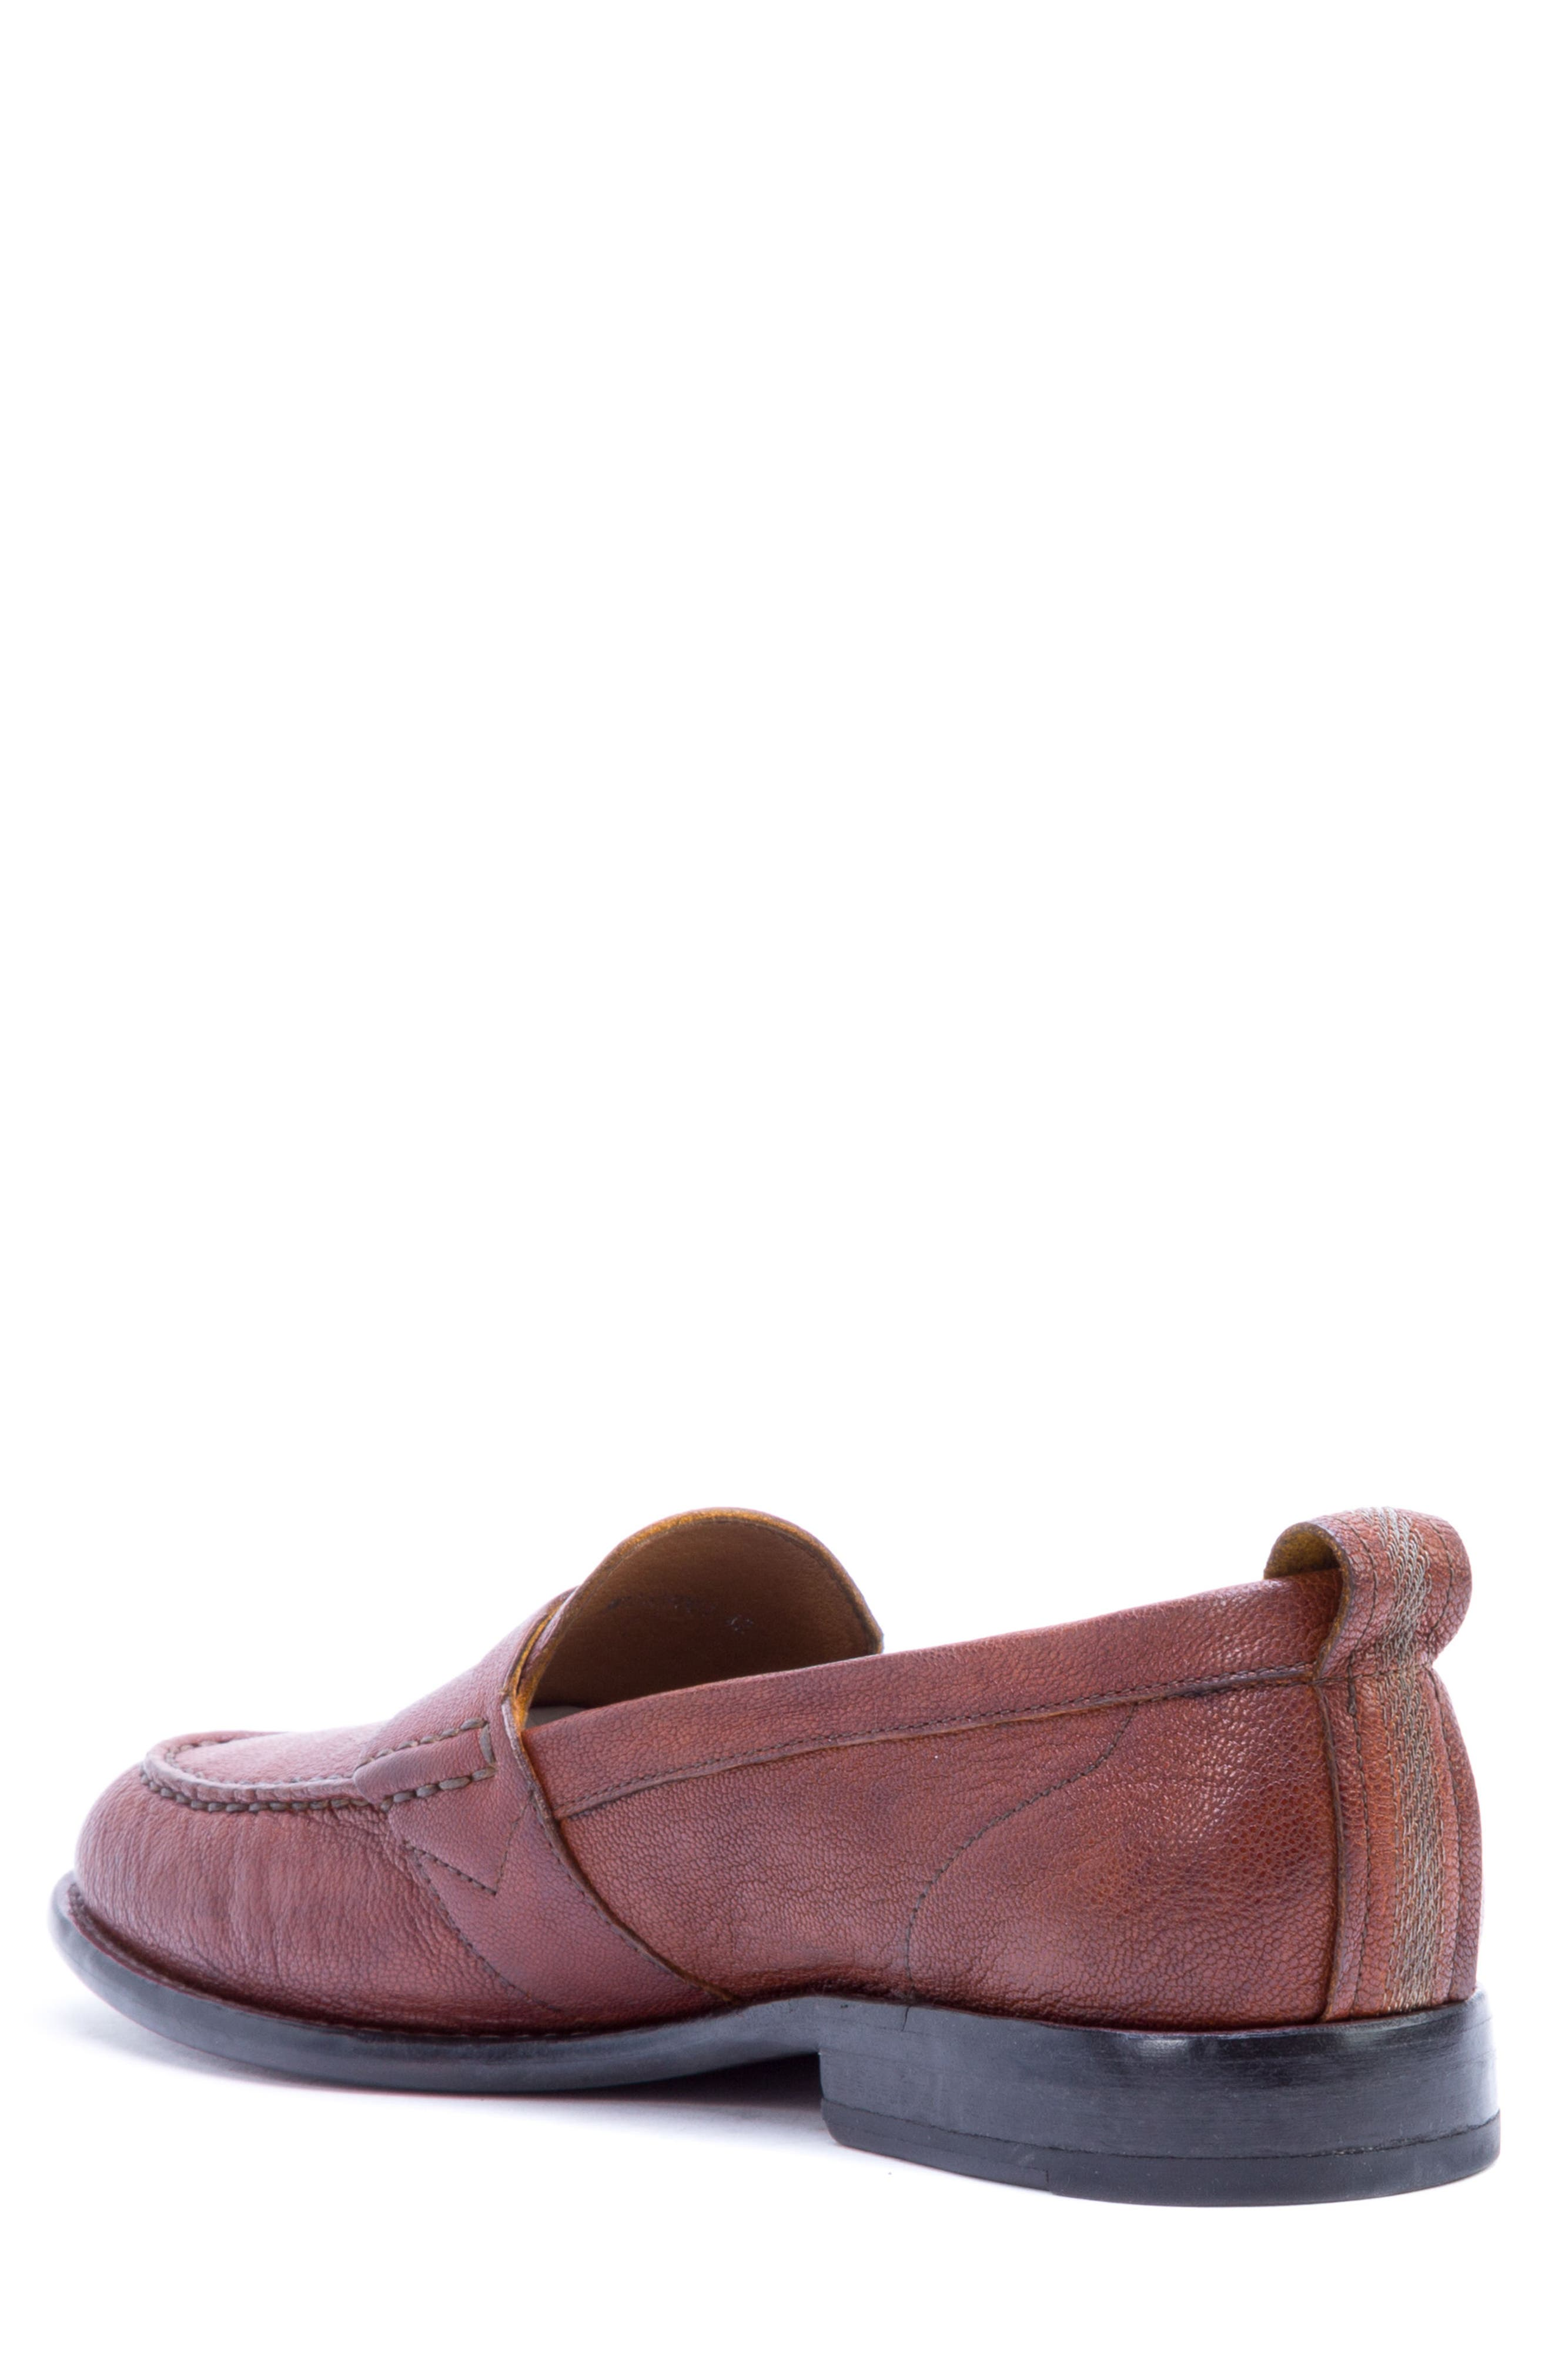 Torres Penny Loafer,                             Alternate thumbnail 2, color,                             Cognac Leather